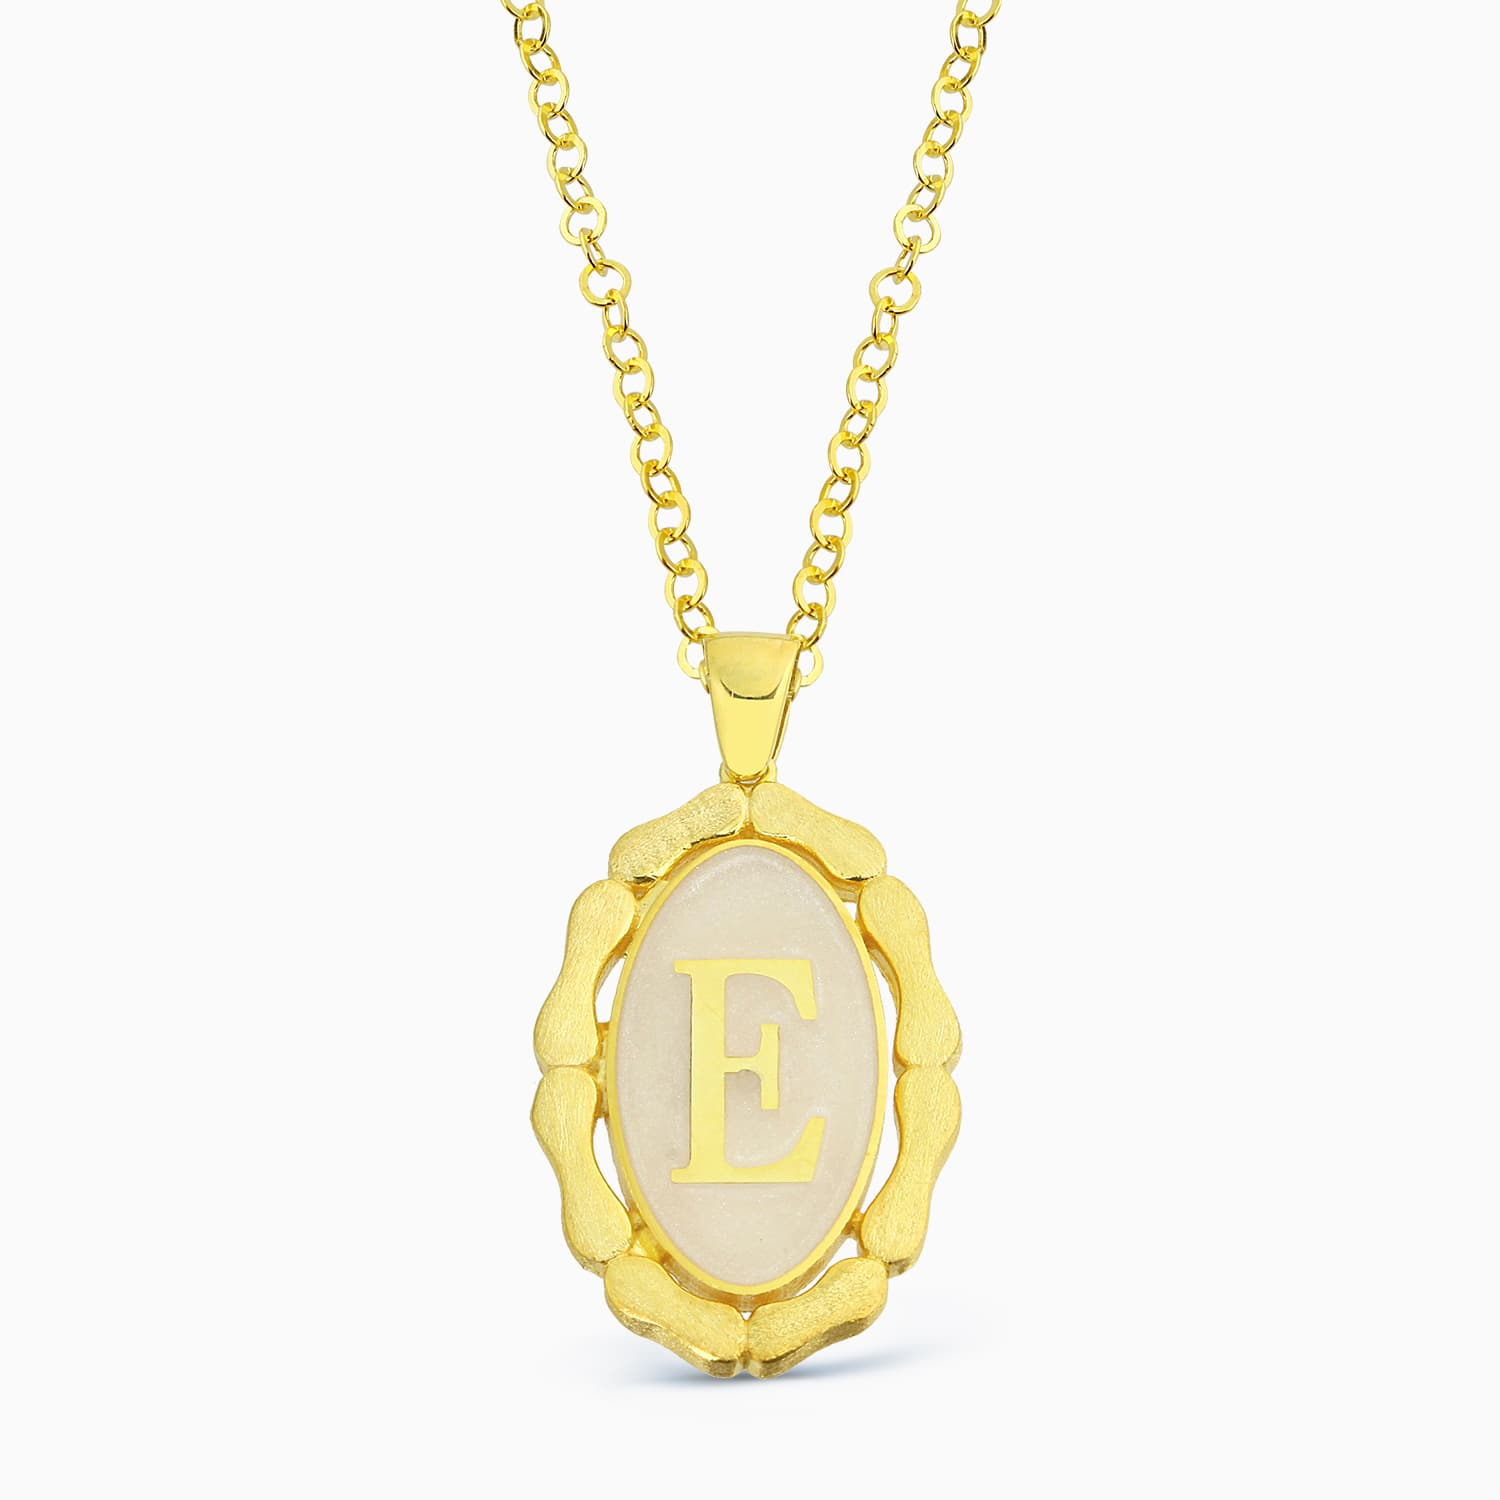 LETTER E MINNED NECKLACE